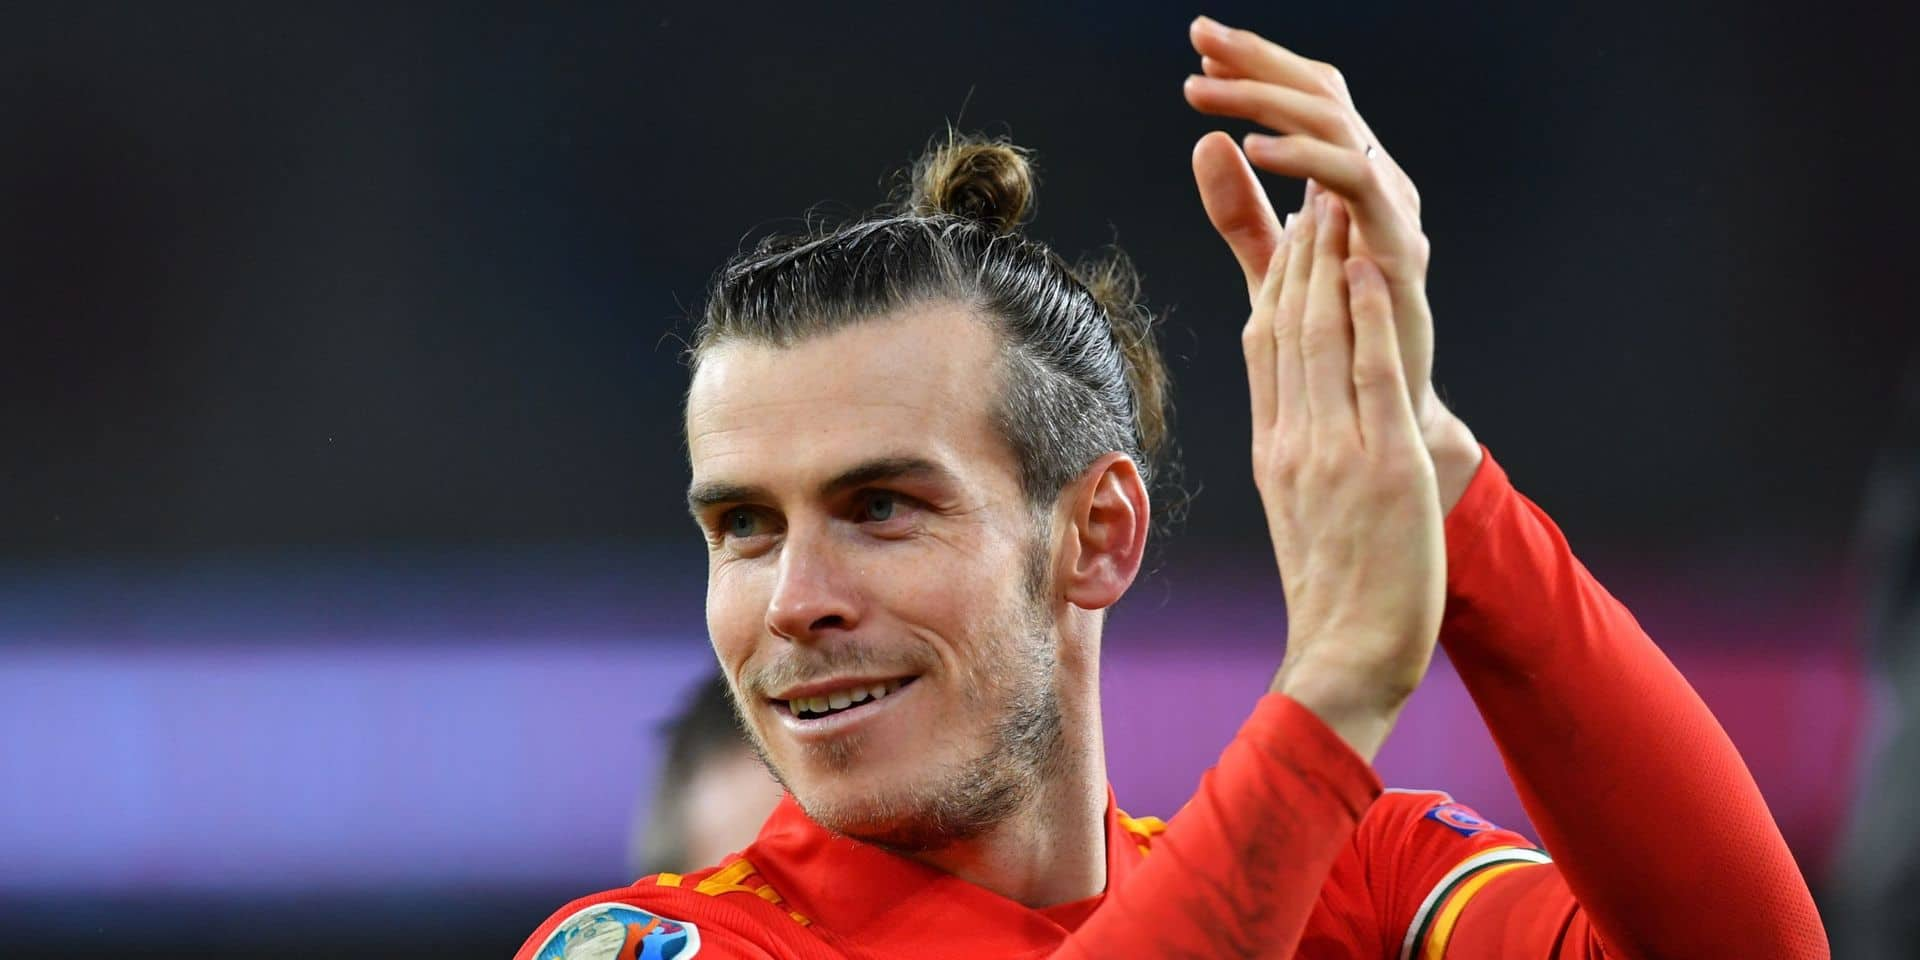 L'énorme provocation de Gareth Bale qui ne va pas plaire à Zidane et au Real Madrid (PHOTO)